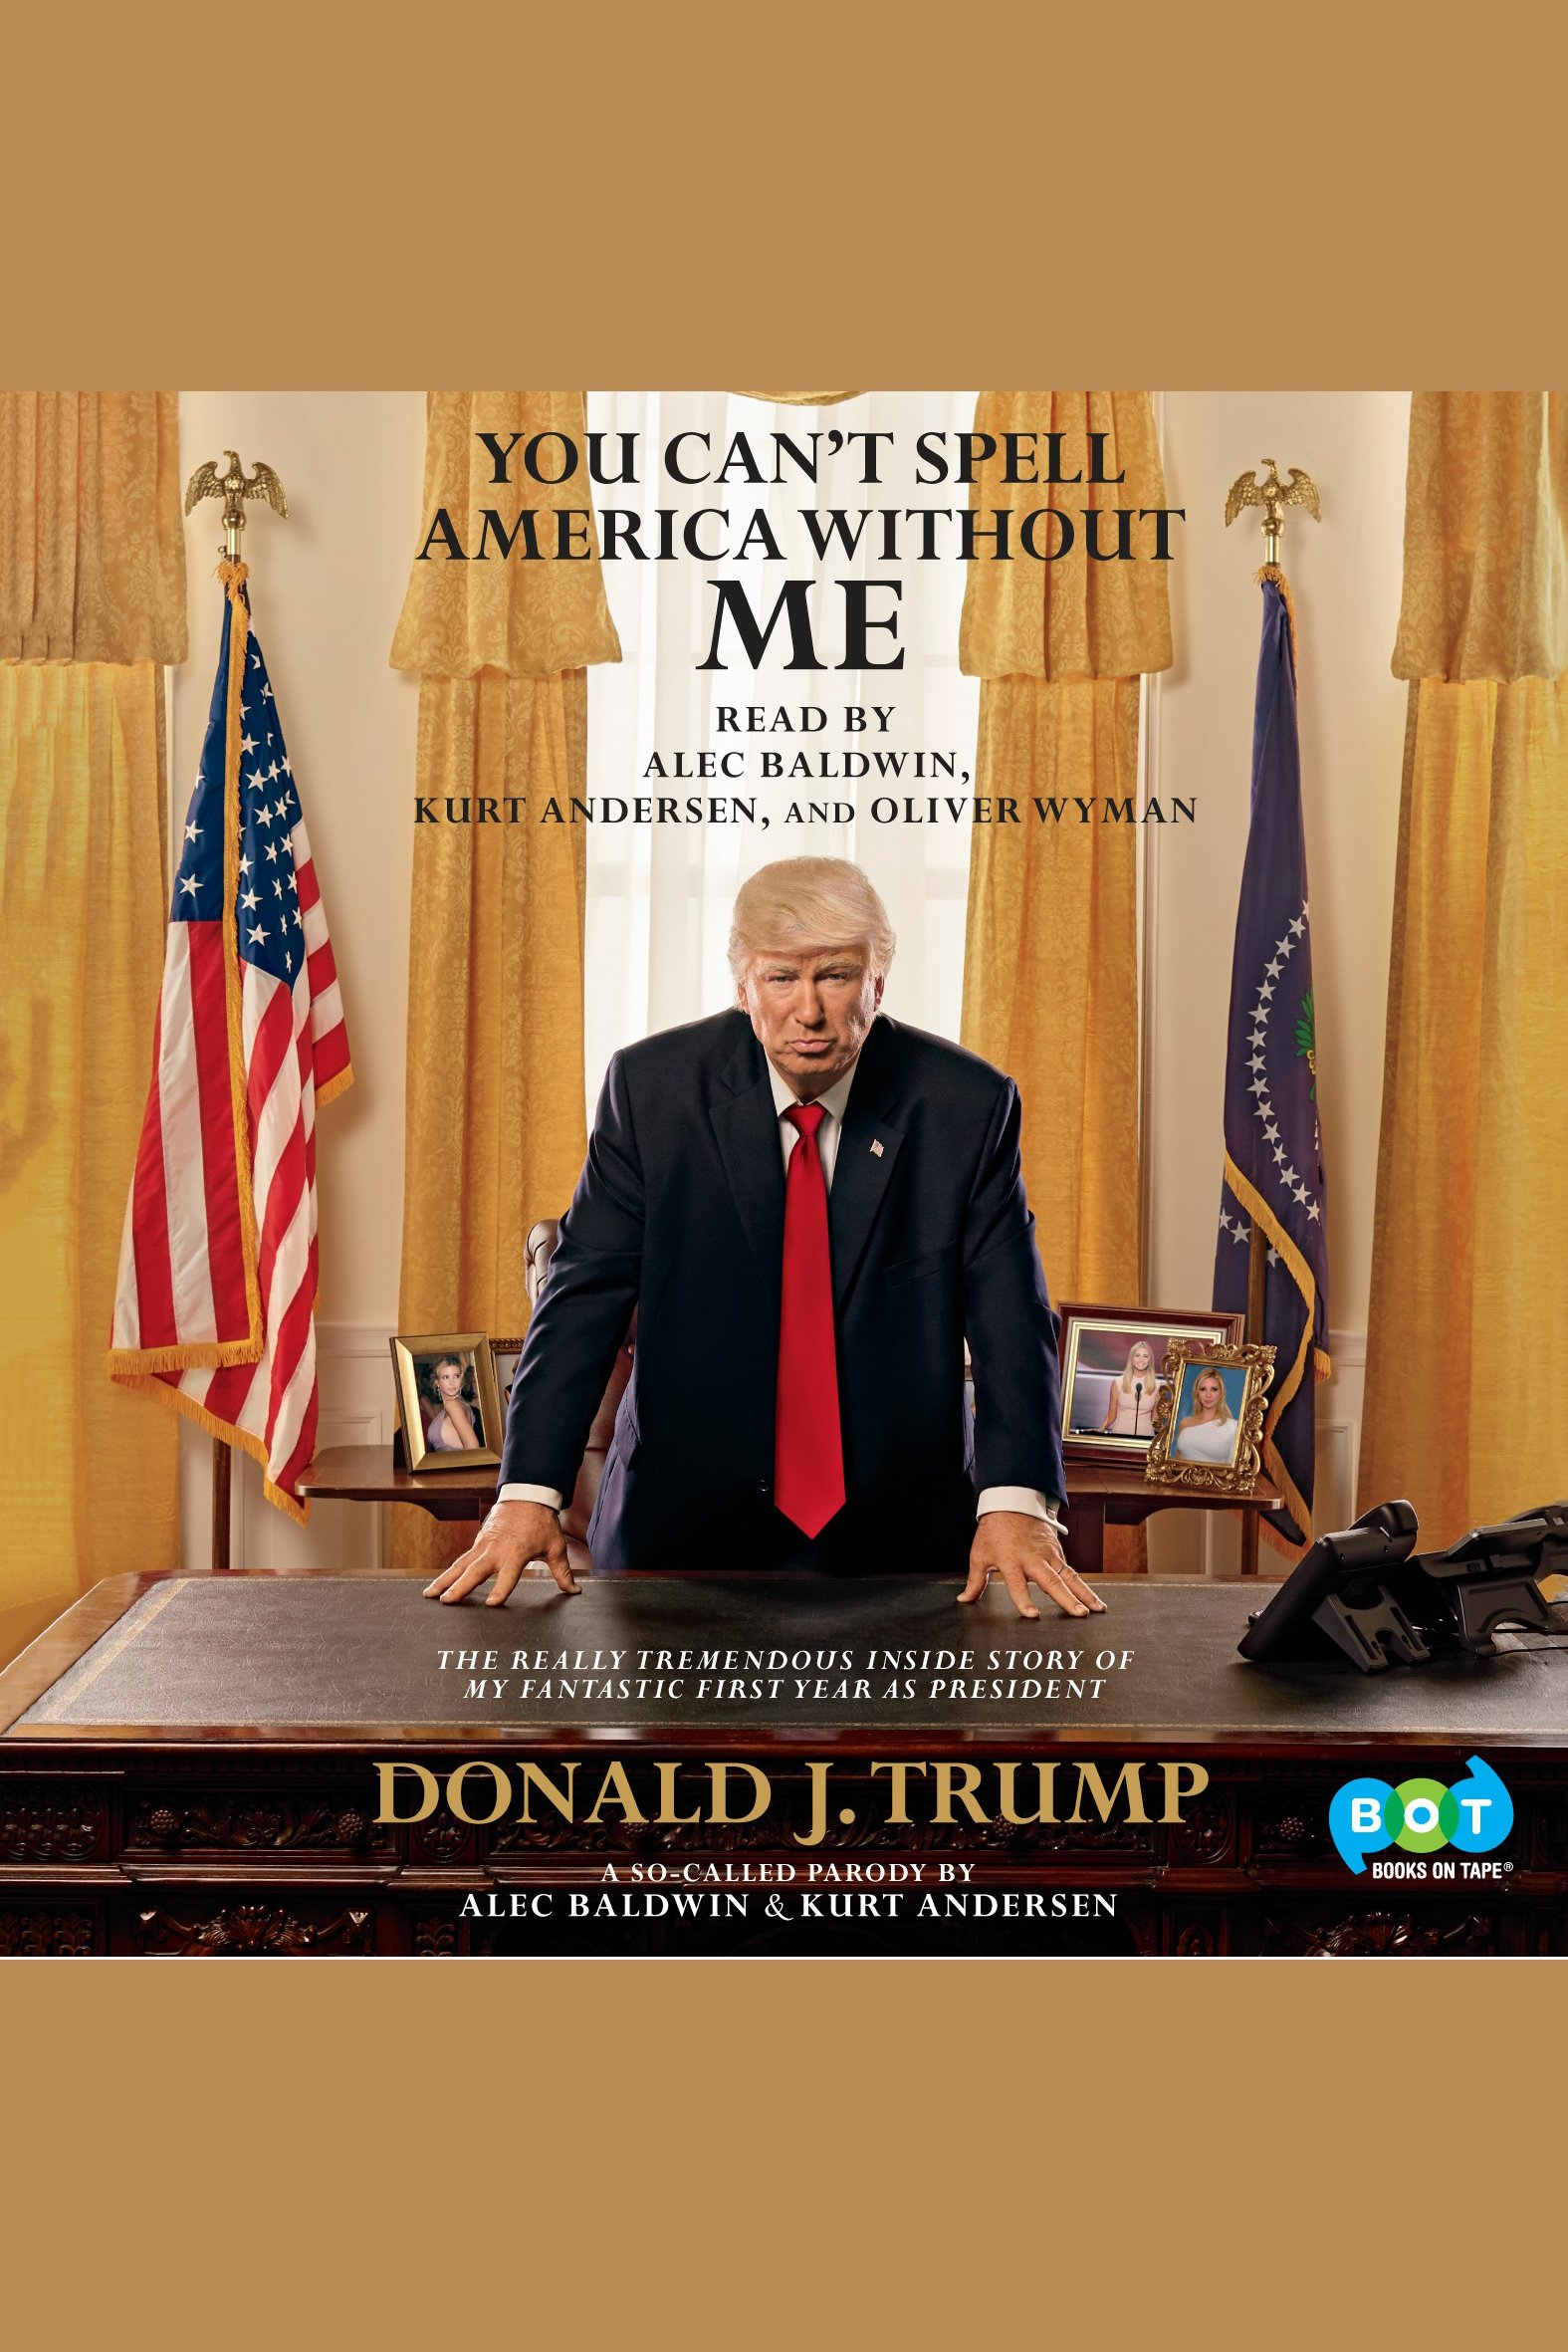 You Can't Spell America Without Me [EAUDIOBOOK] The Really Tremendous Inside Story of My Fantastic First Year as President Donald J. Trump (A So-Called Parody)